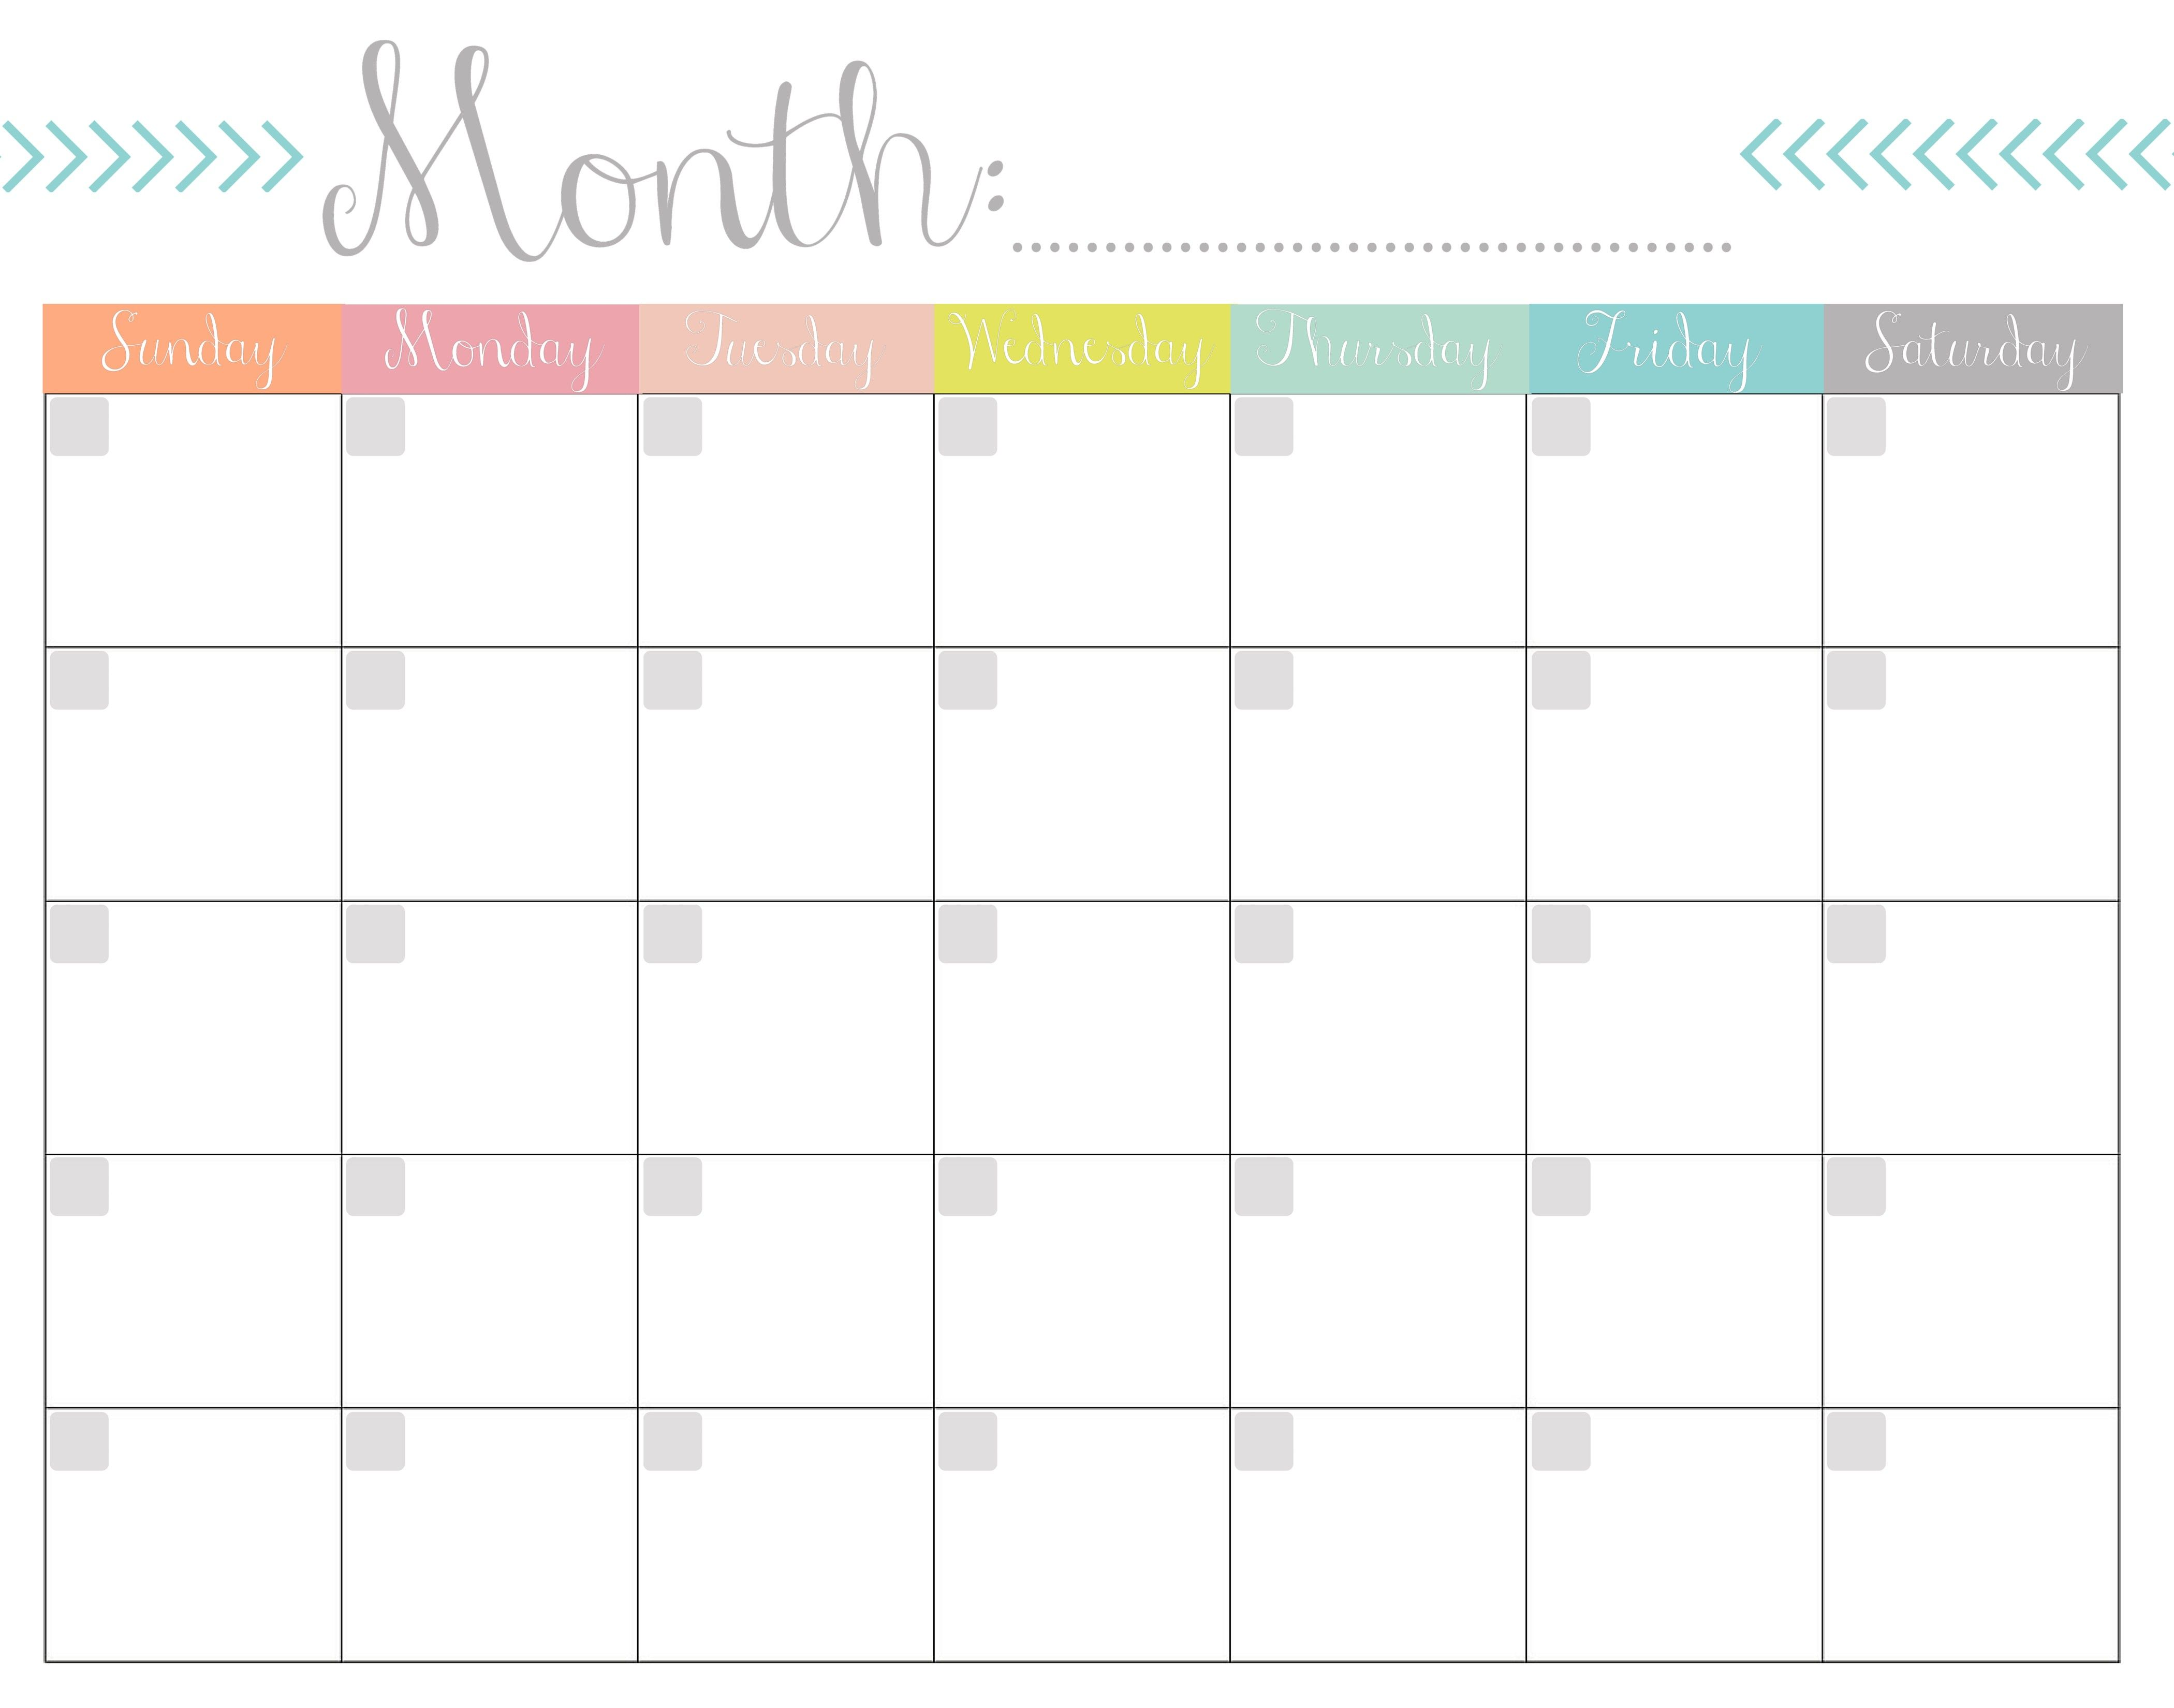 Can i print a blank willmaker document, so that i can fill it in by hand? Lovely Monthly Calendar Free Printable   Monthly calendar ...